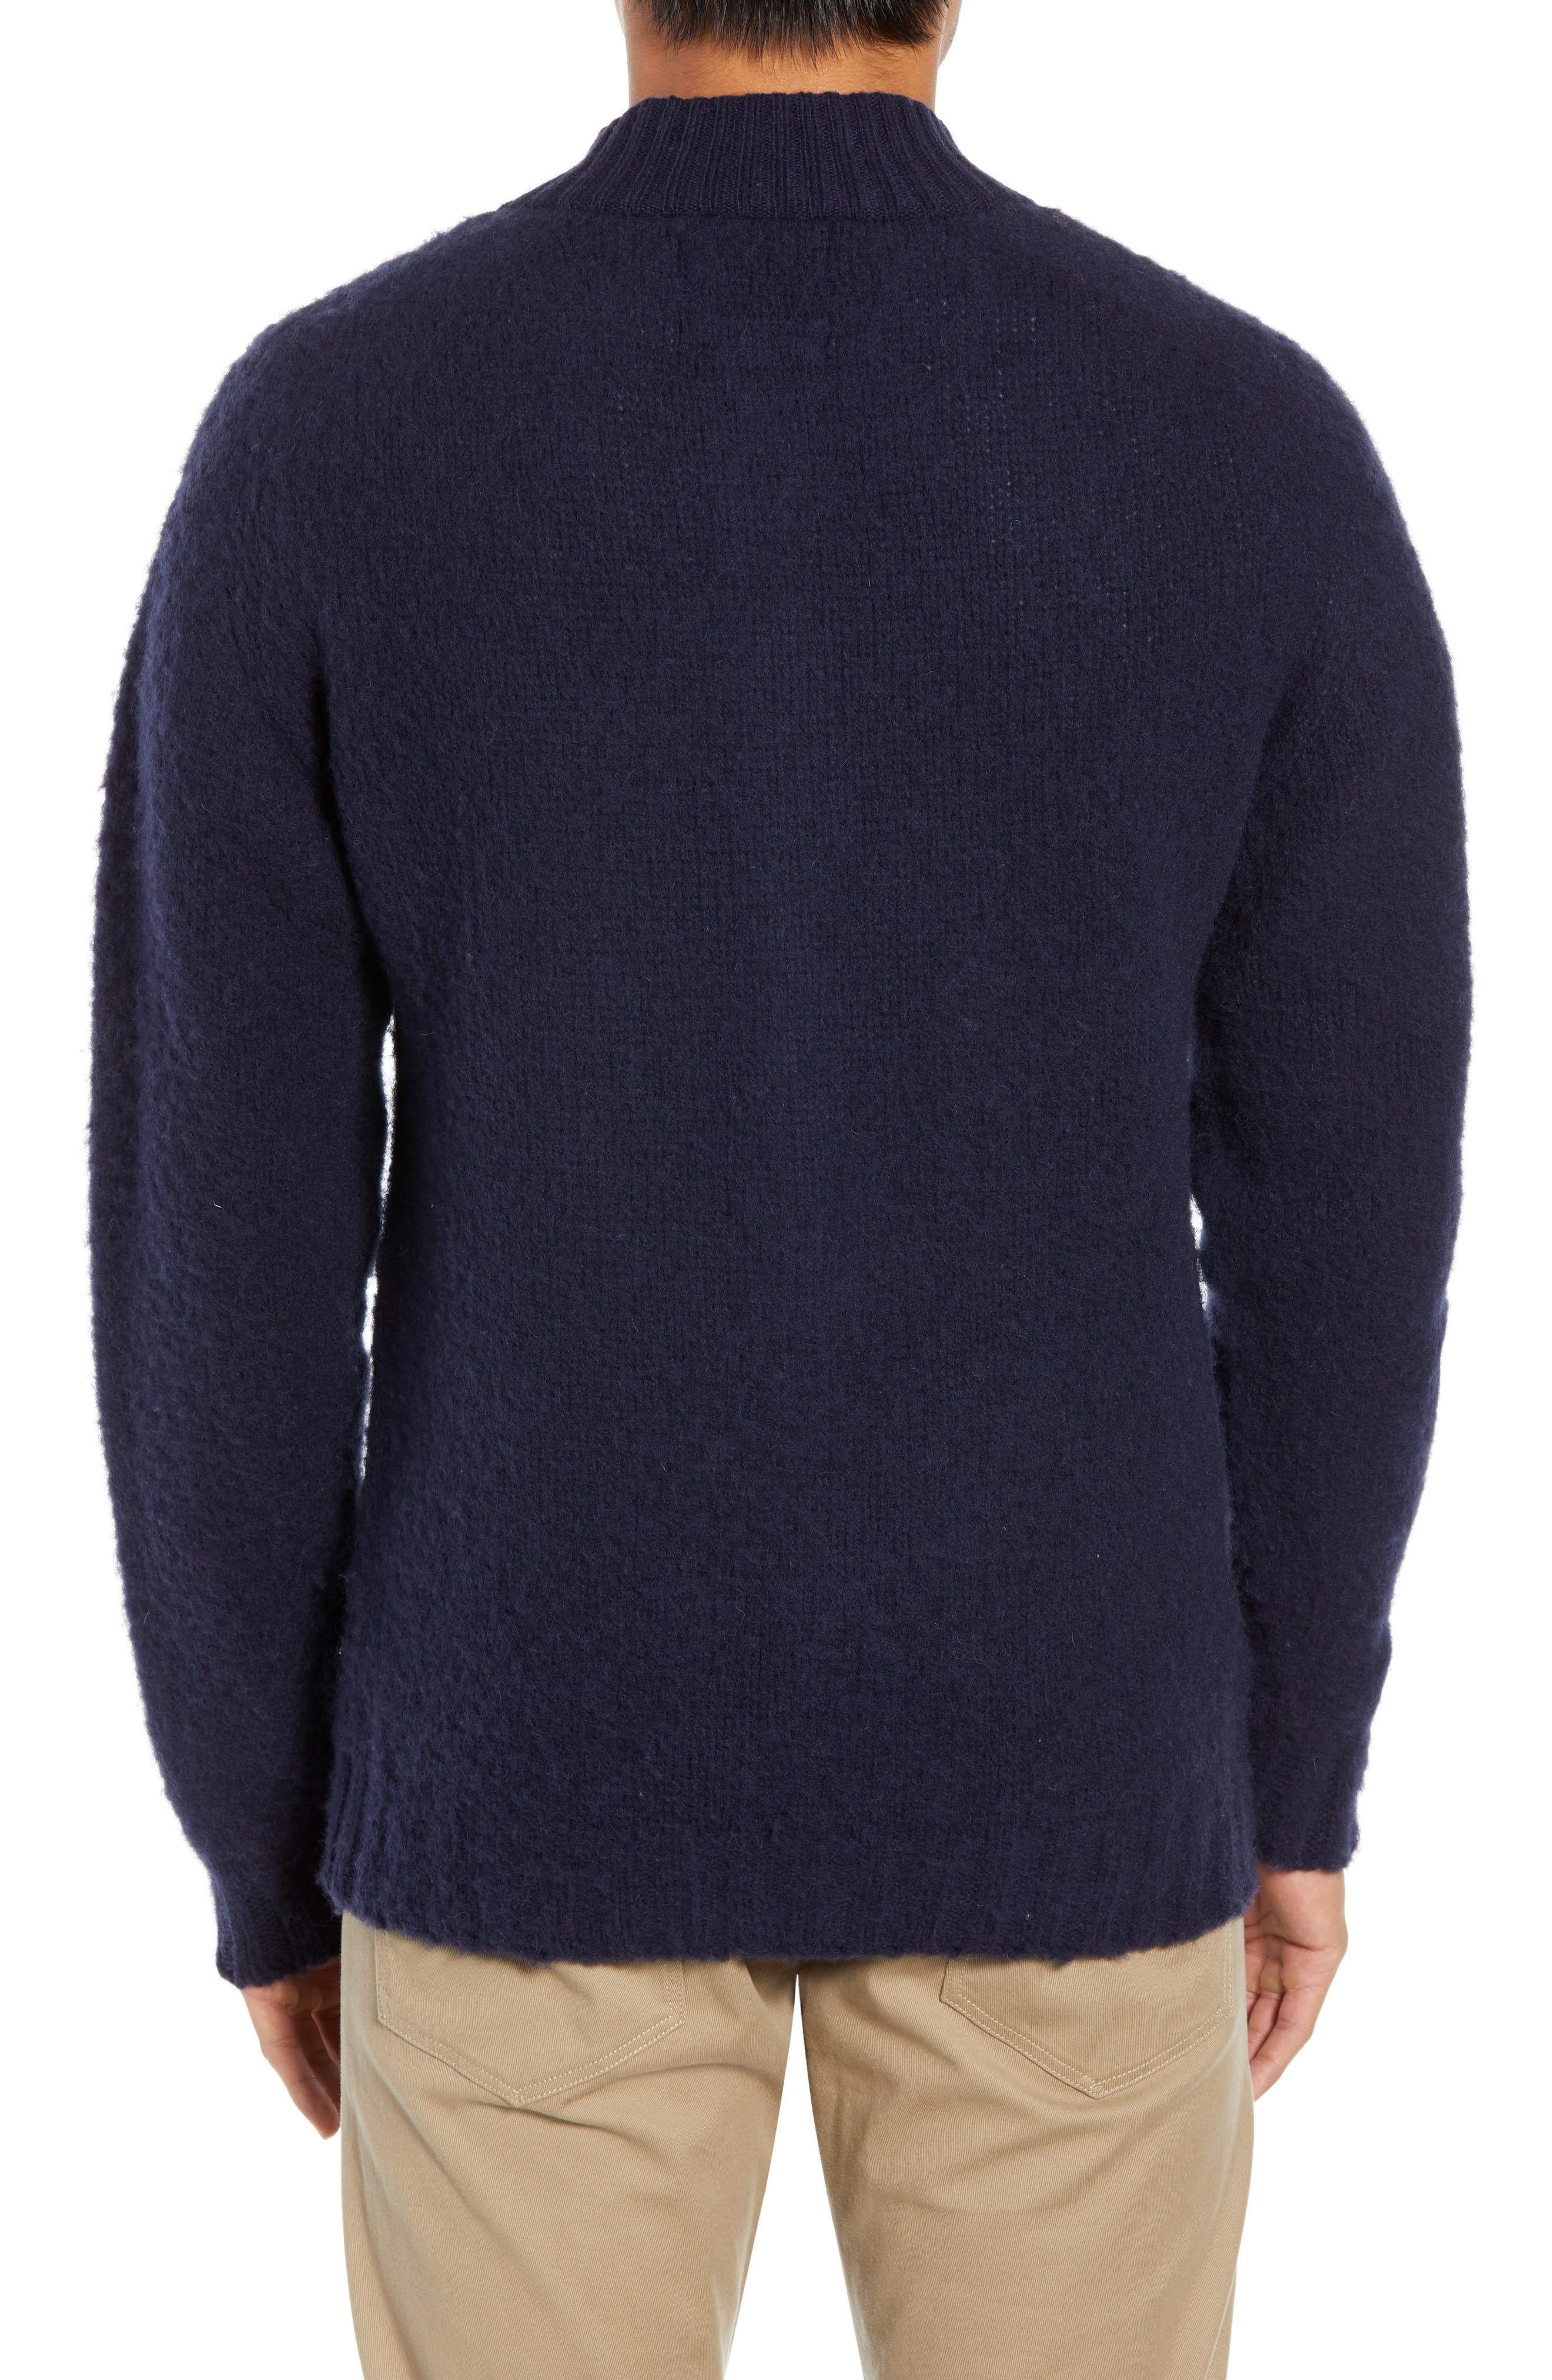 Baseball Cardy Wool Sweater,                             Alternate thumbnail 2, color,                             NAVY